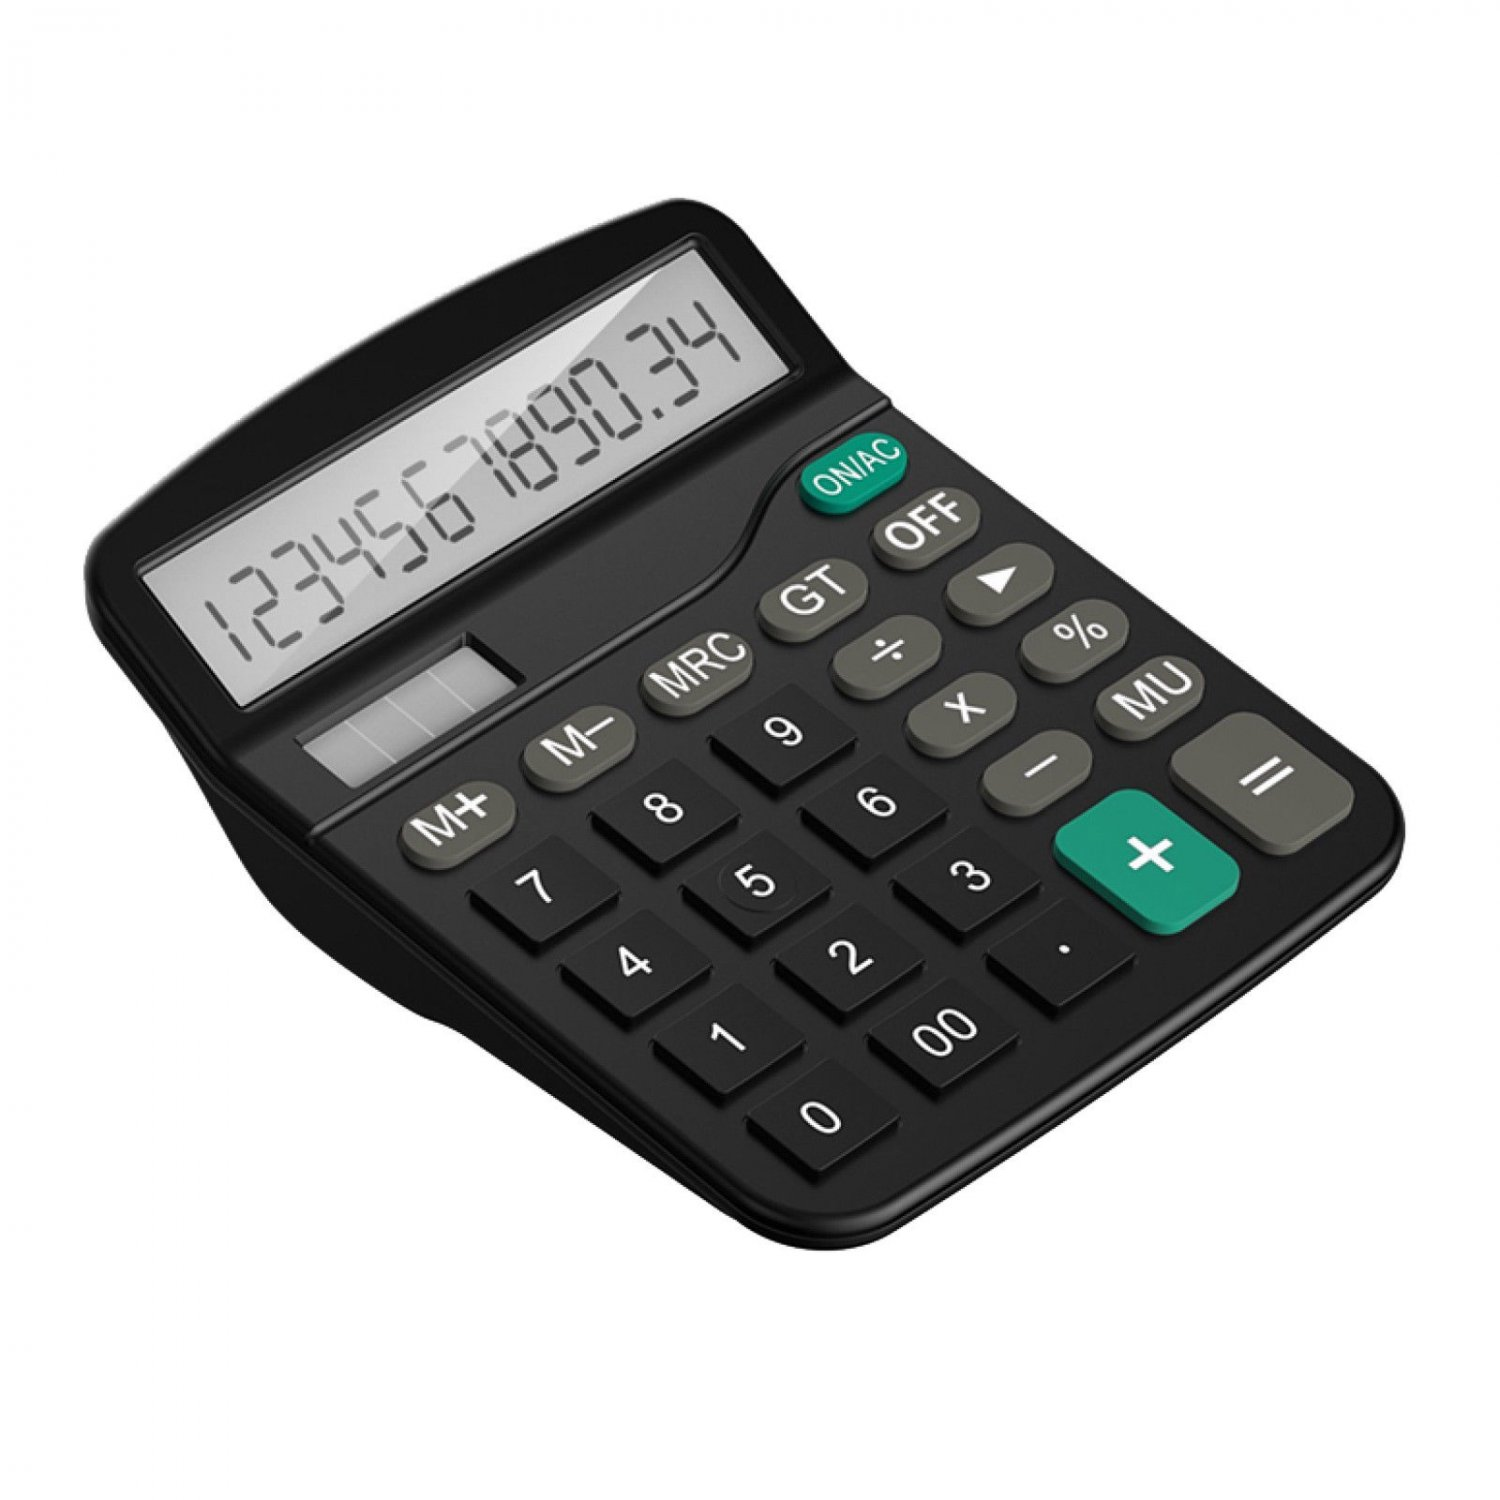 Desktop Calculator 12-digit LCD Display black